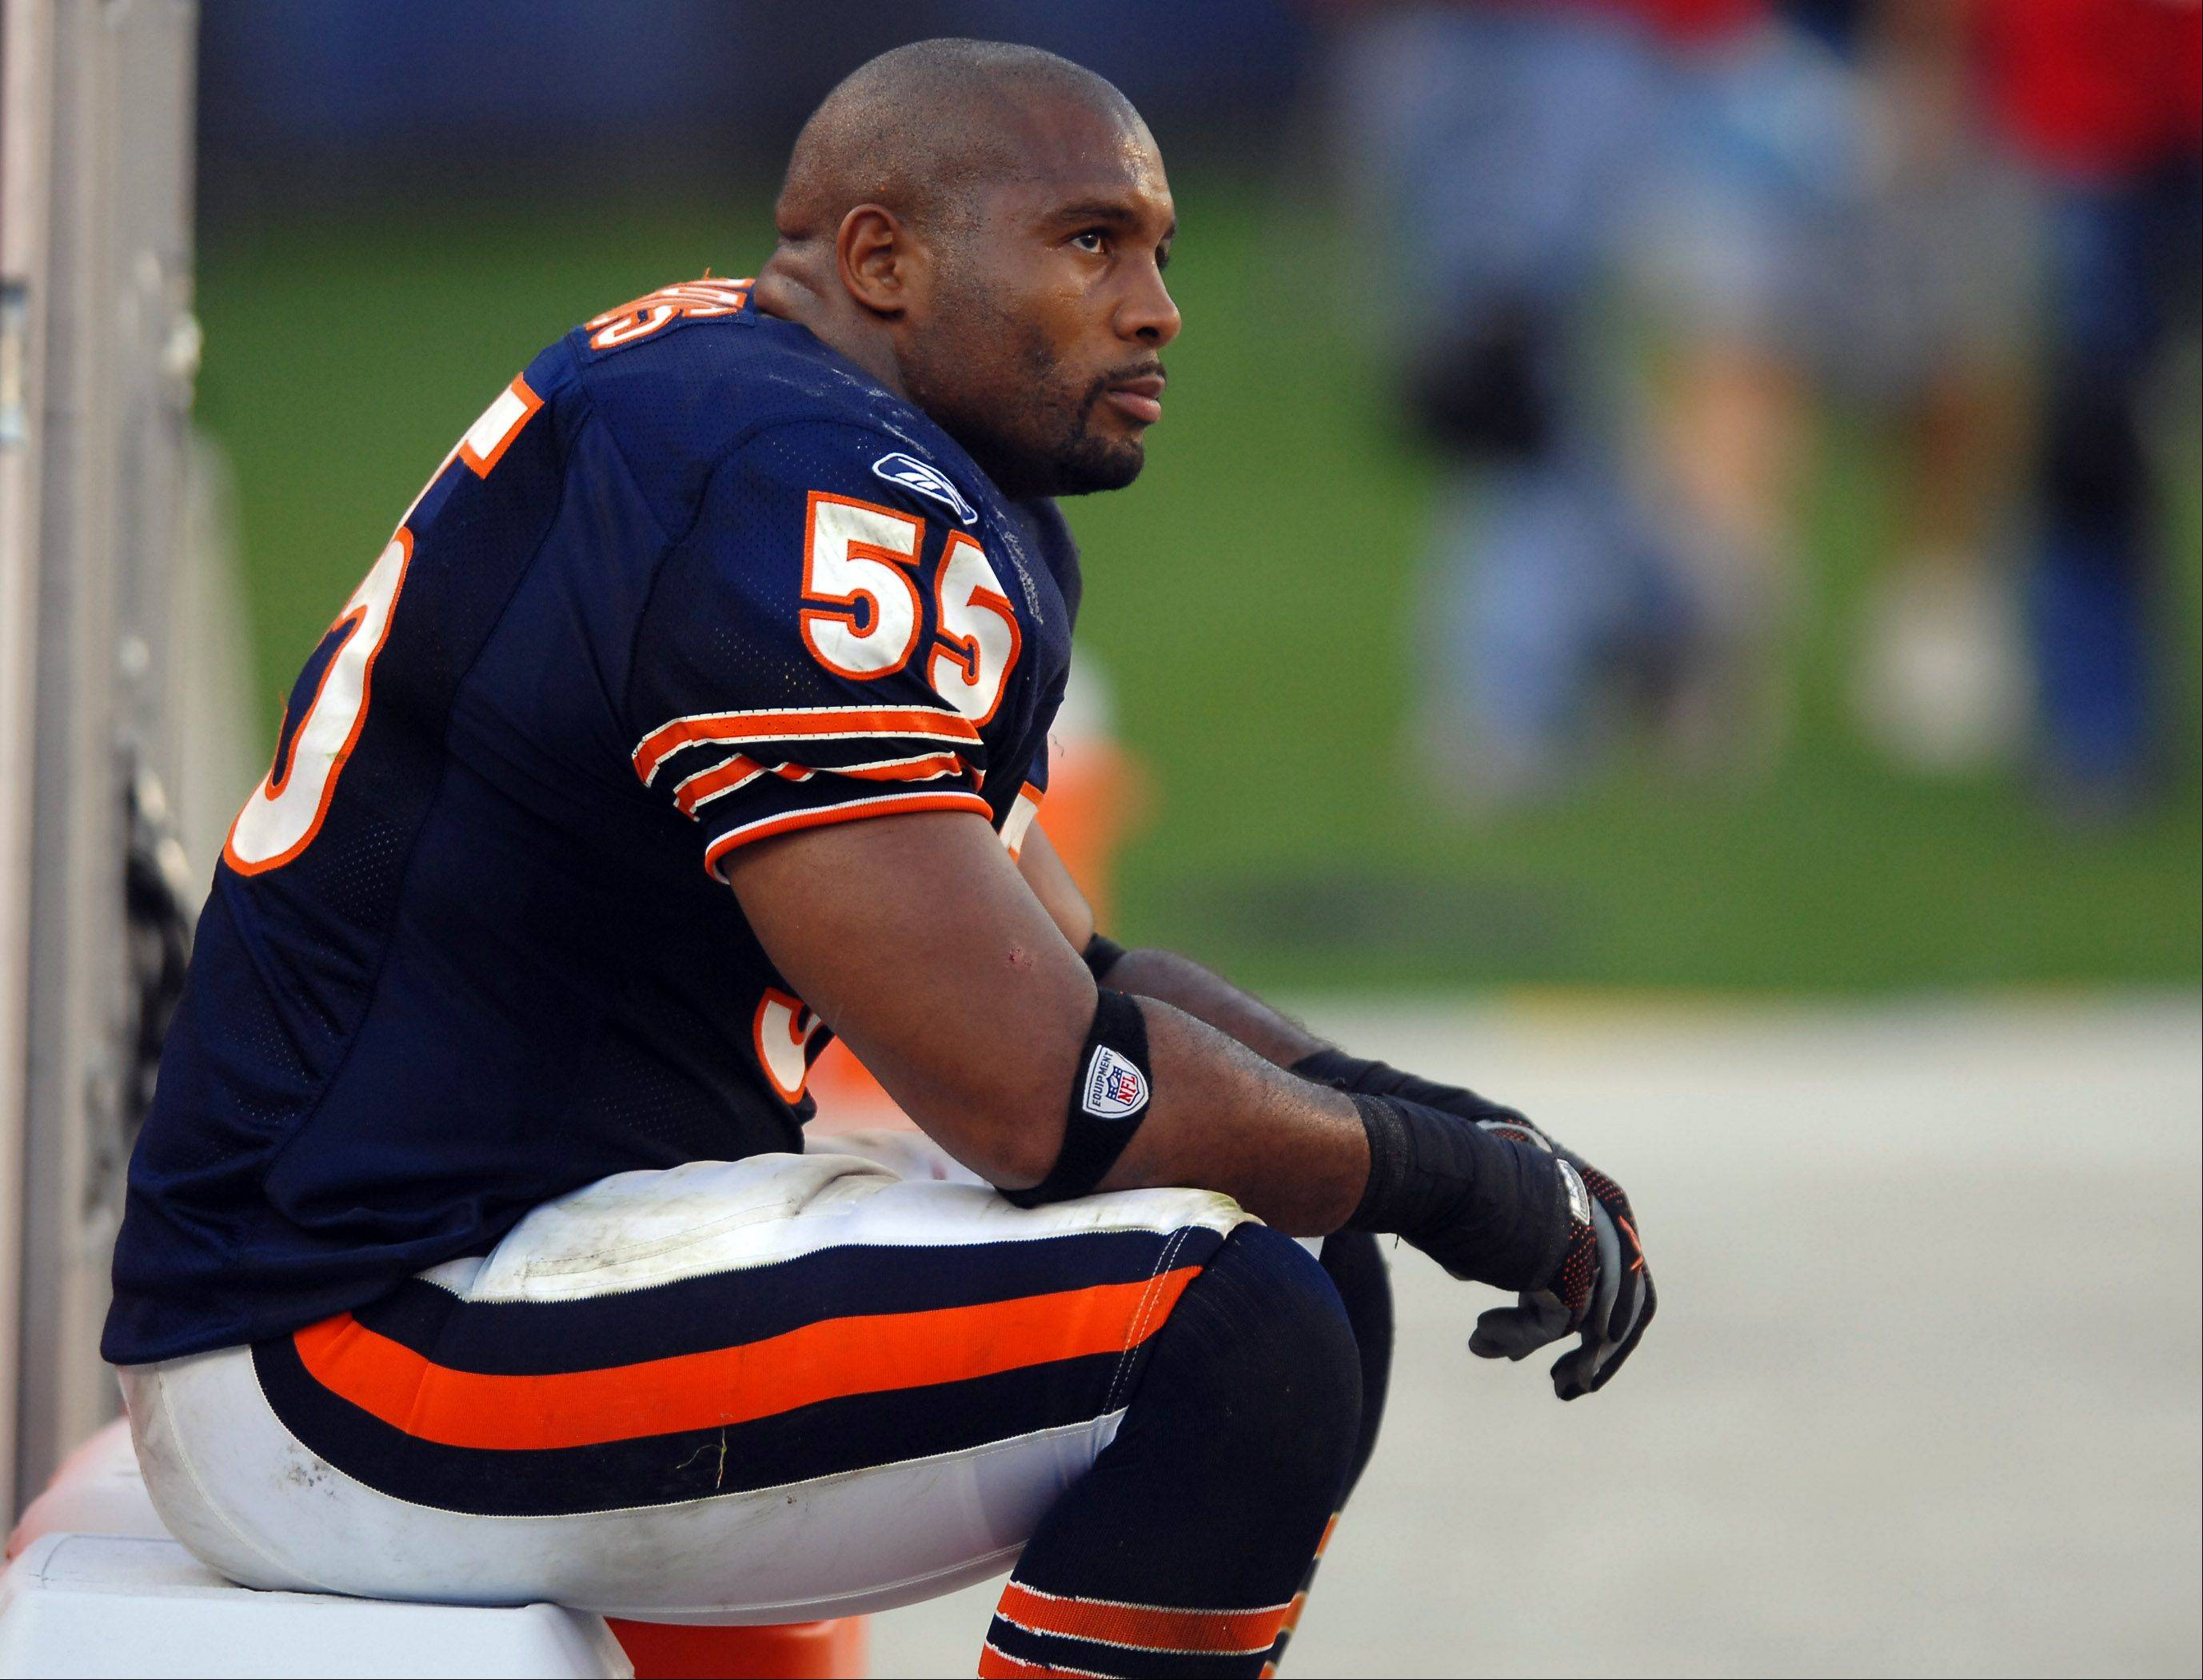 Bears linebacker Lance Briggs says his dissatisfaction with his contract situation will not affect his play on the field.